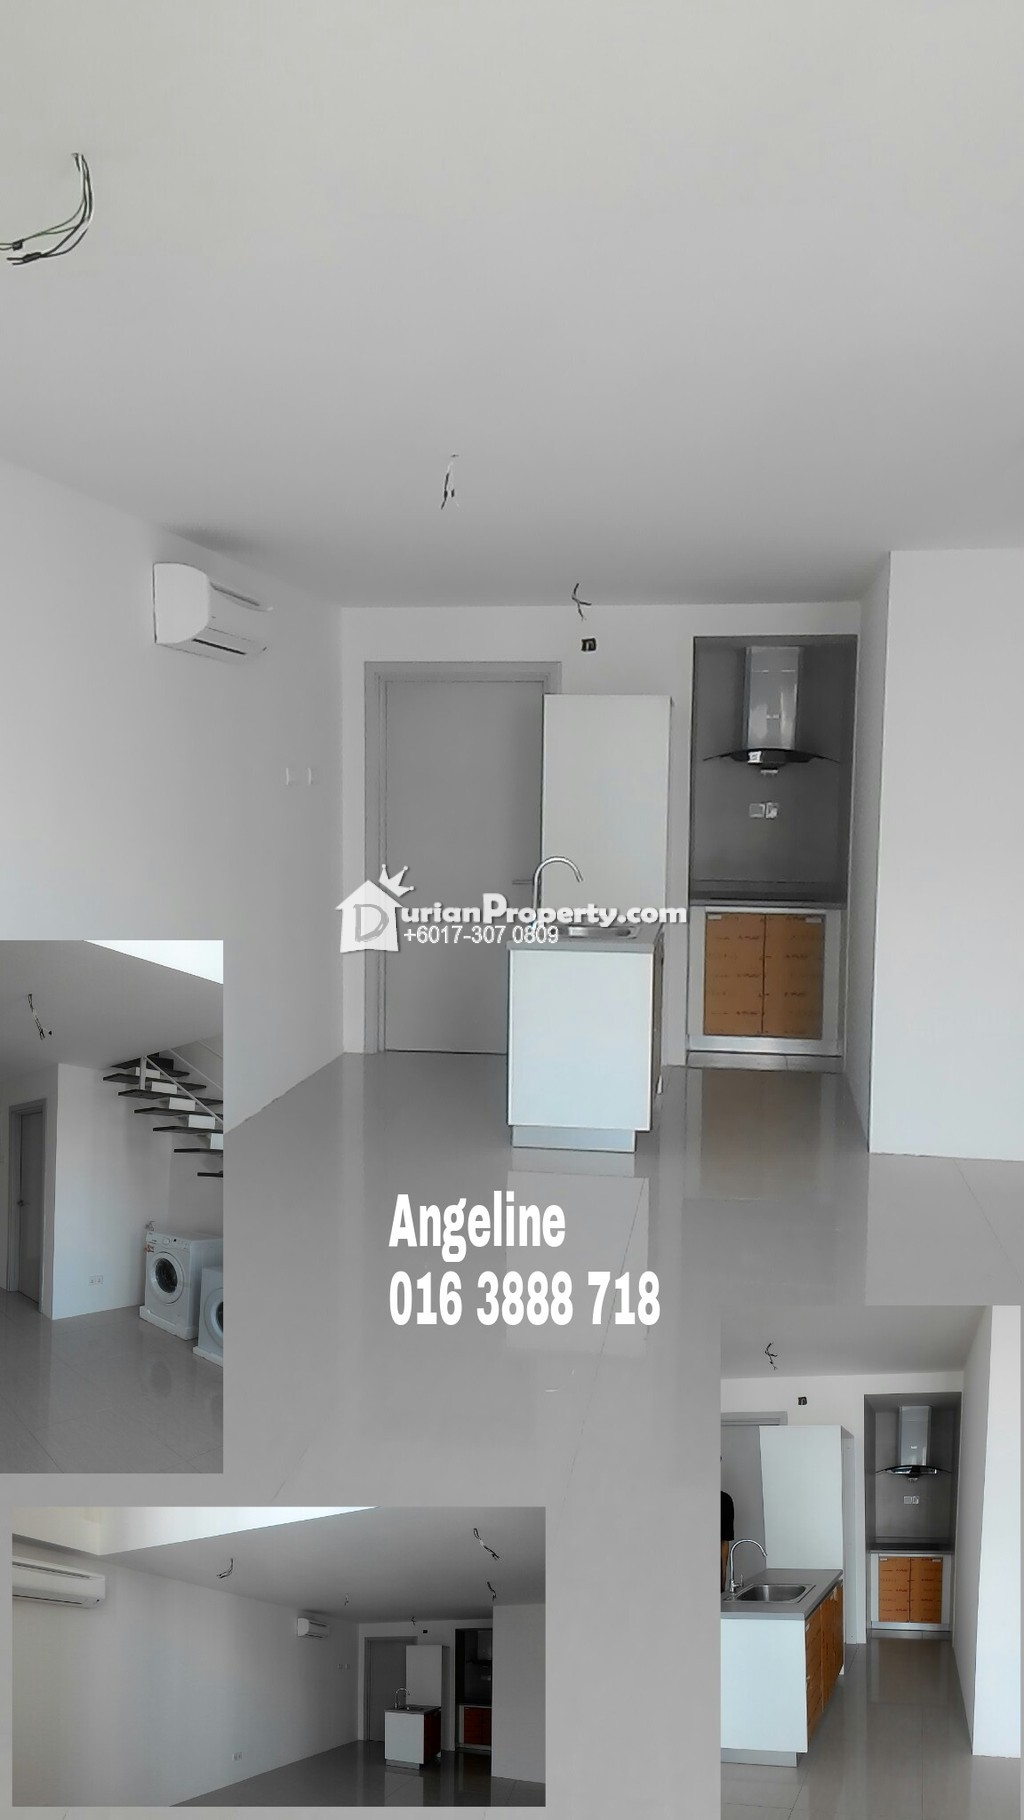 Arte Rent House Condo For Rent At Arte Shah Alam For Rm 2 300 By Florence Chin